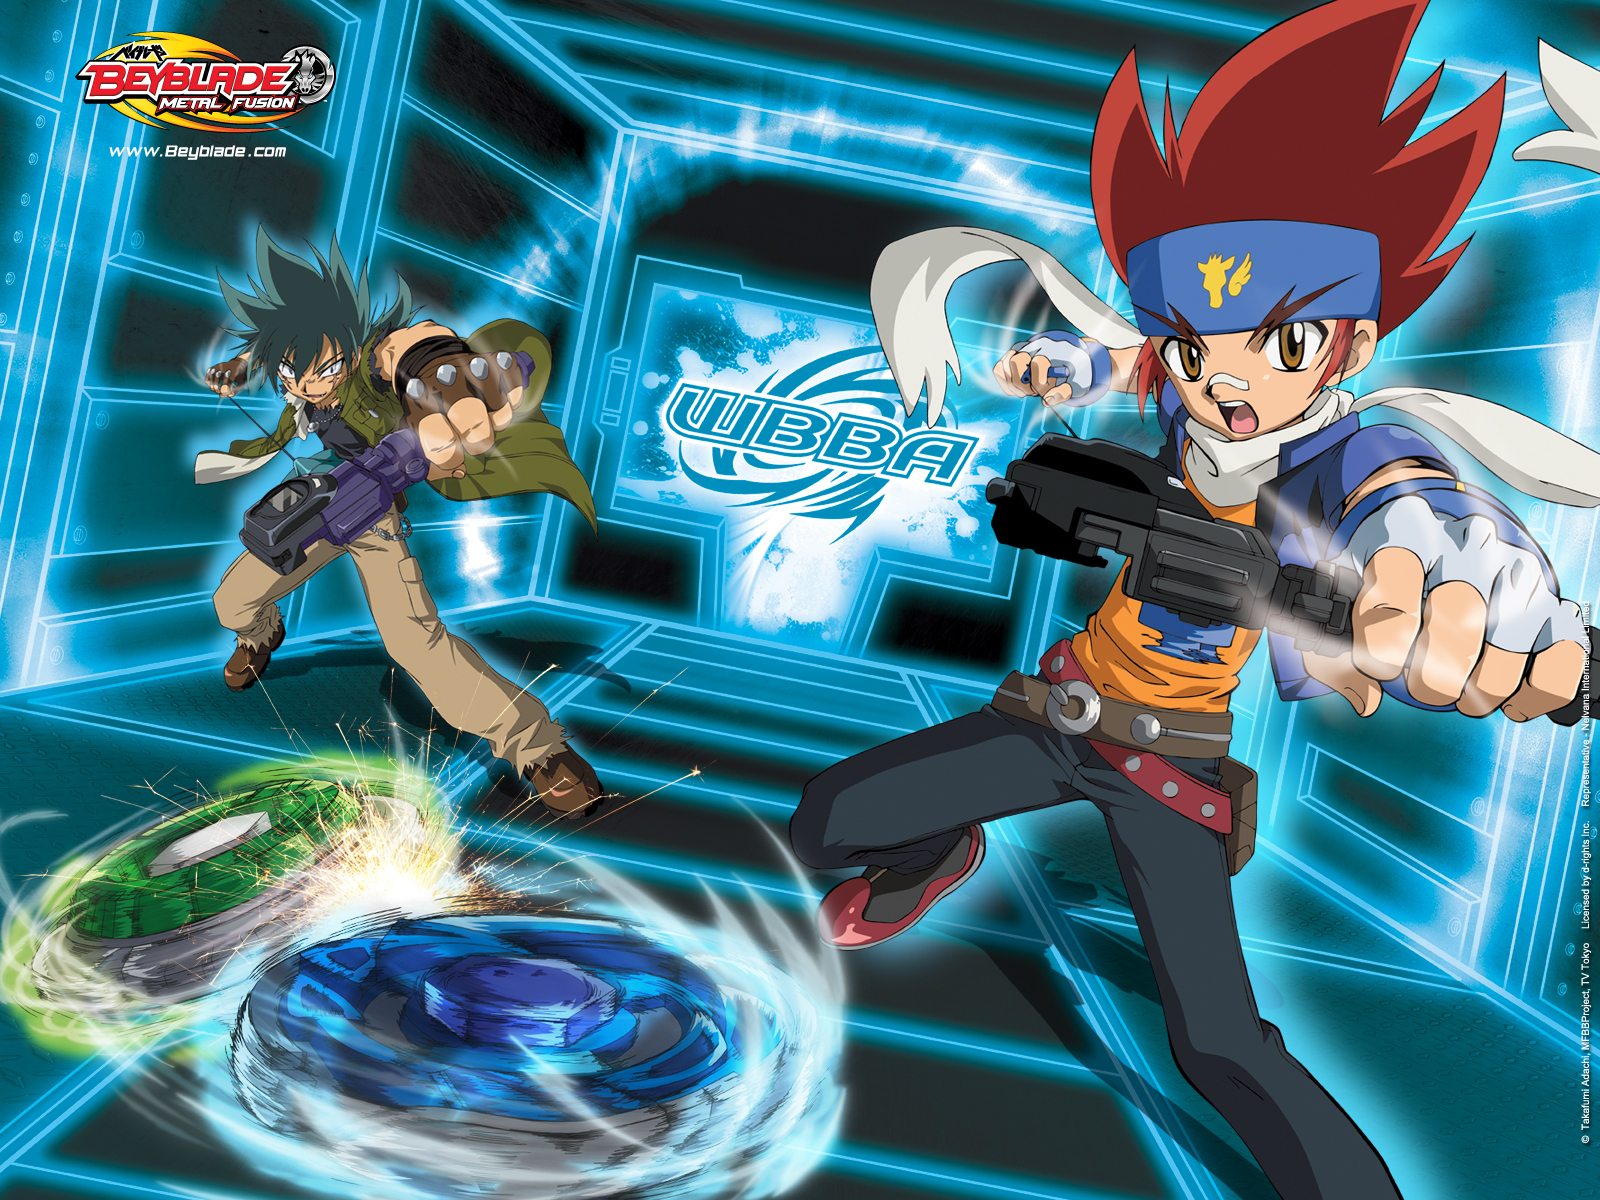 beyblade metal masters kyoya car interior design. Black Bedroom Furniture Sets. Home Design Ideas